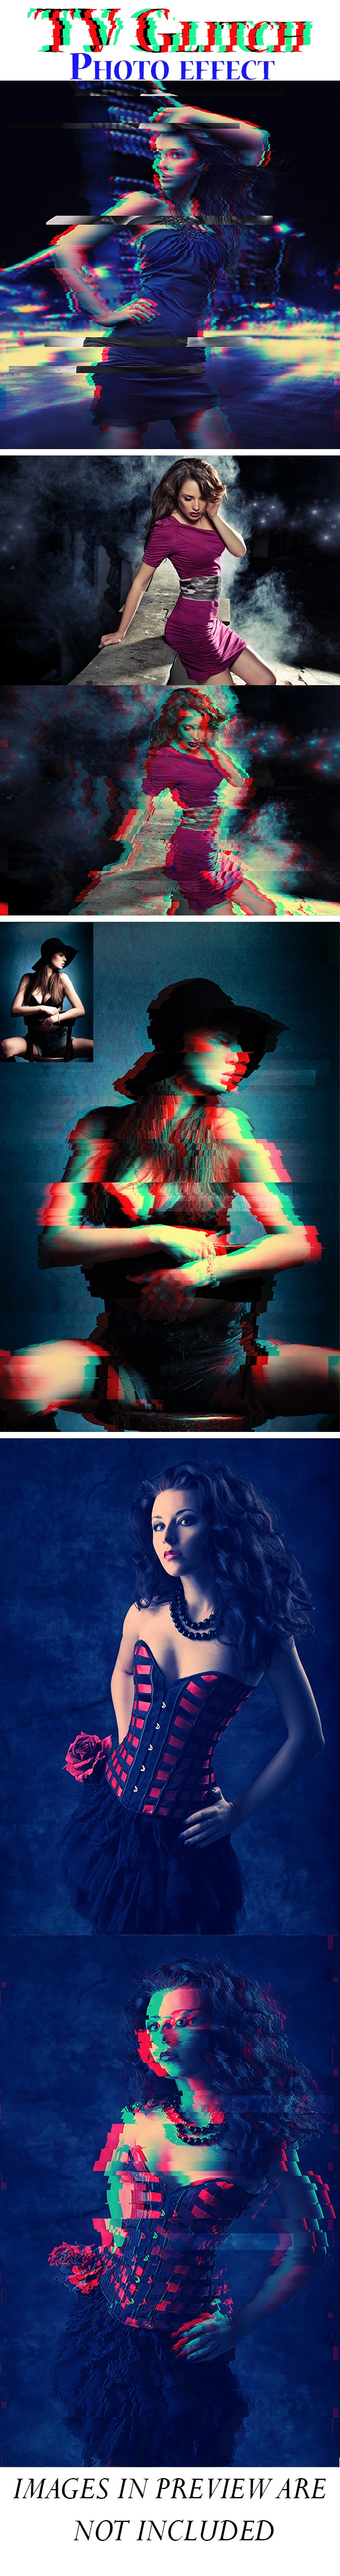 TV Glitch Photoshop Action - Photo Effects Actions